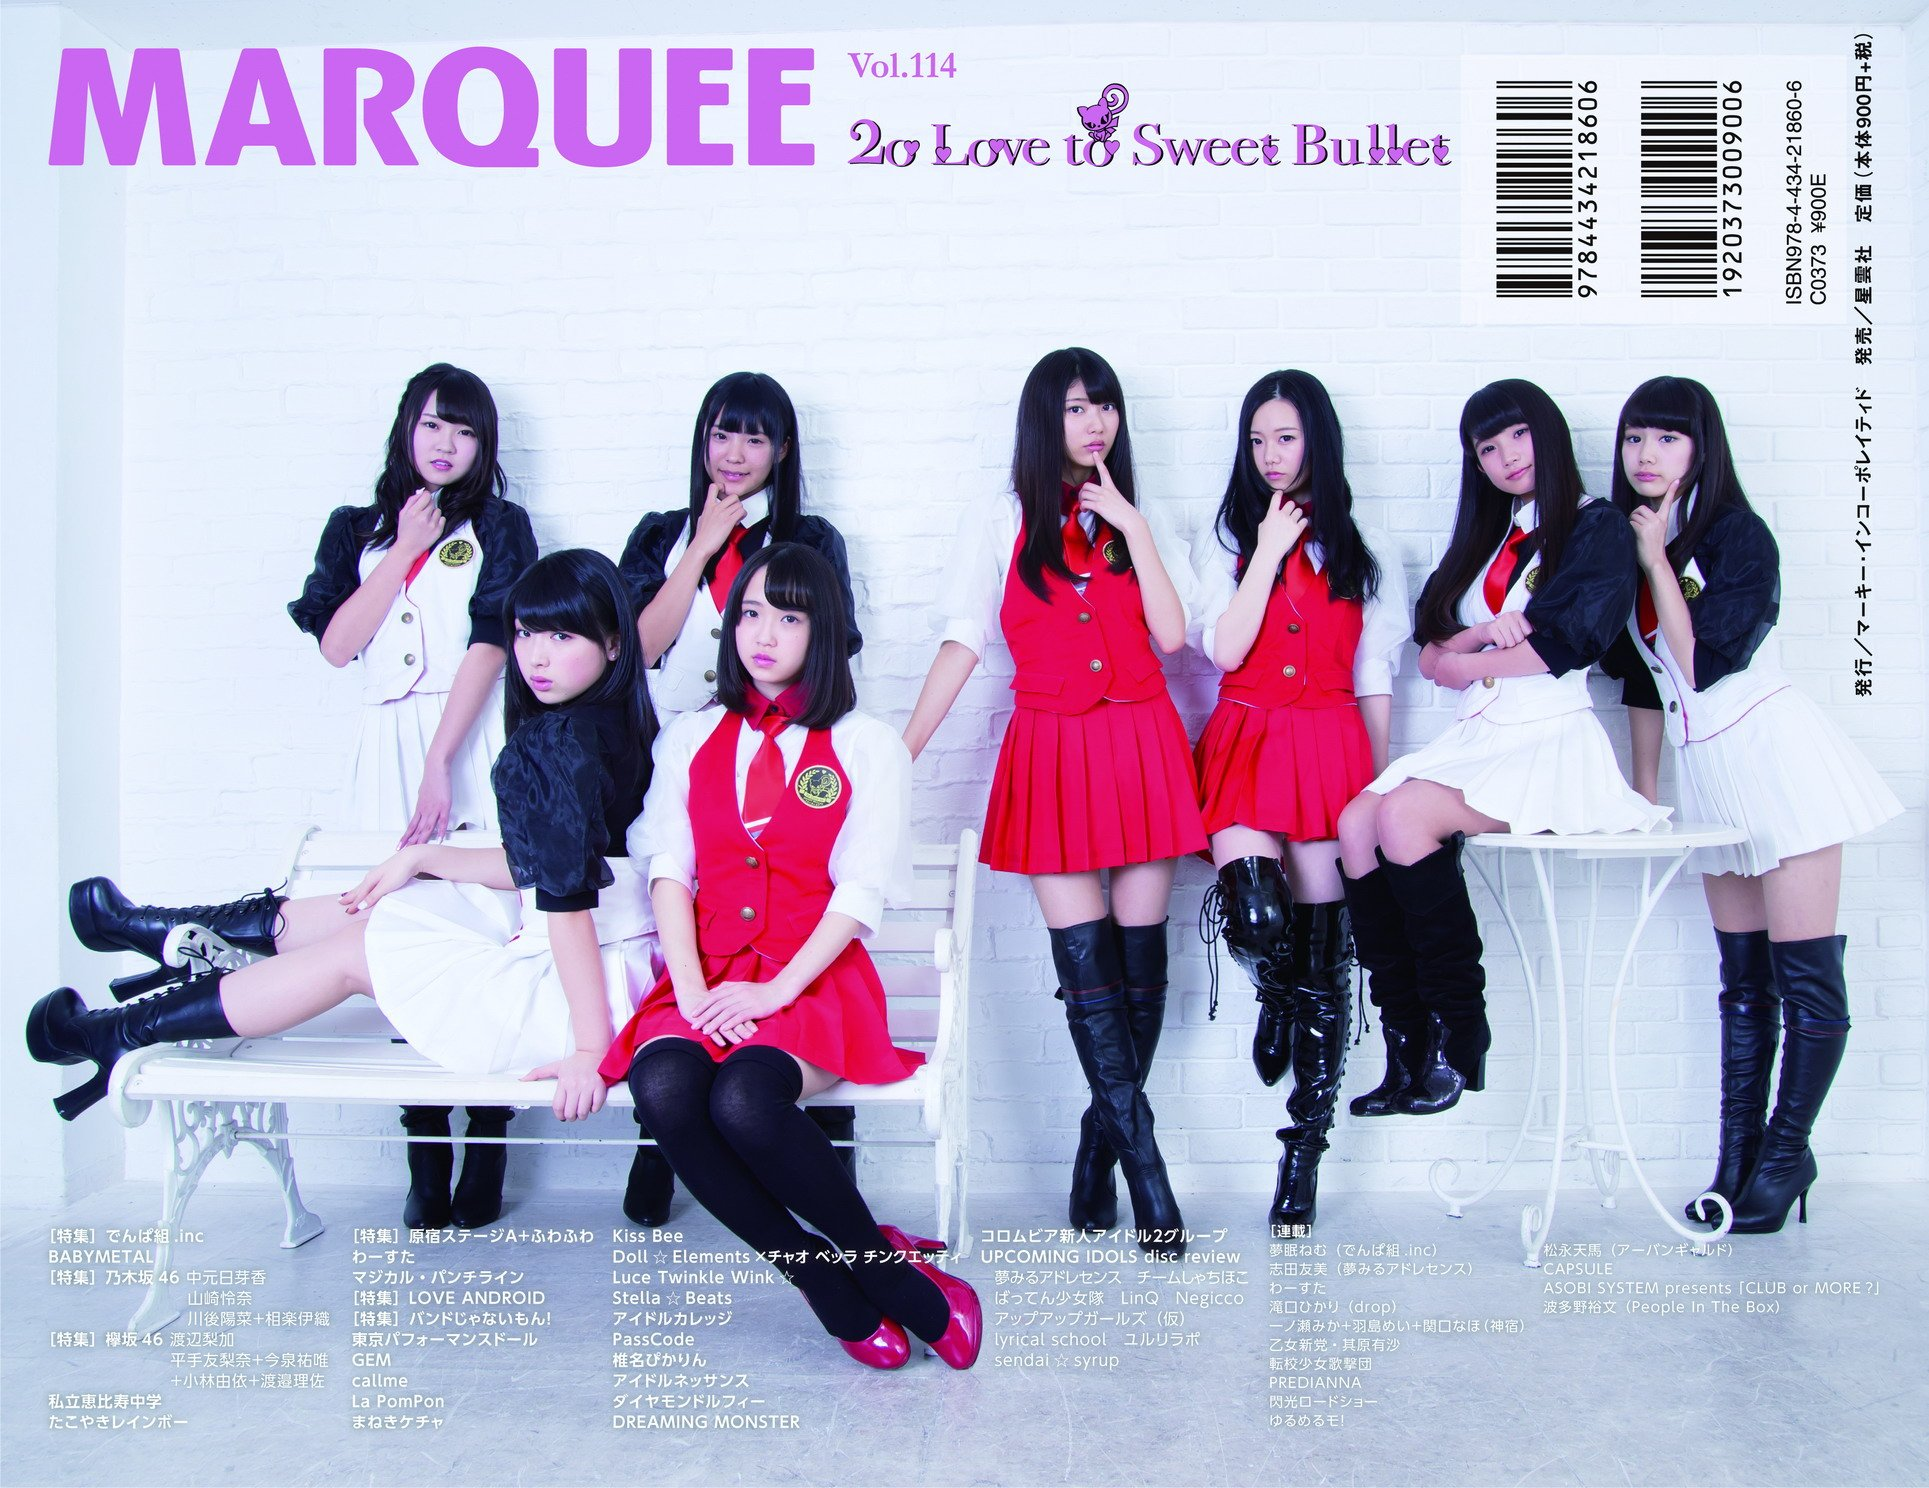 [MARQUEE] Vol.114 20 Love to Sweet Bullet 欅坂46 [15P29MB]